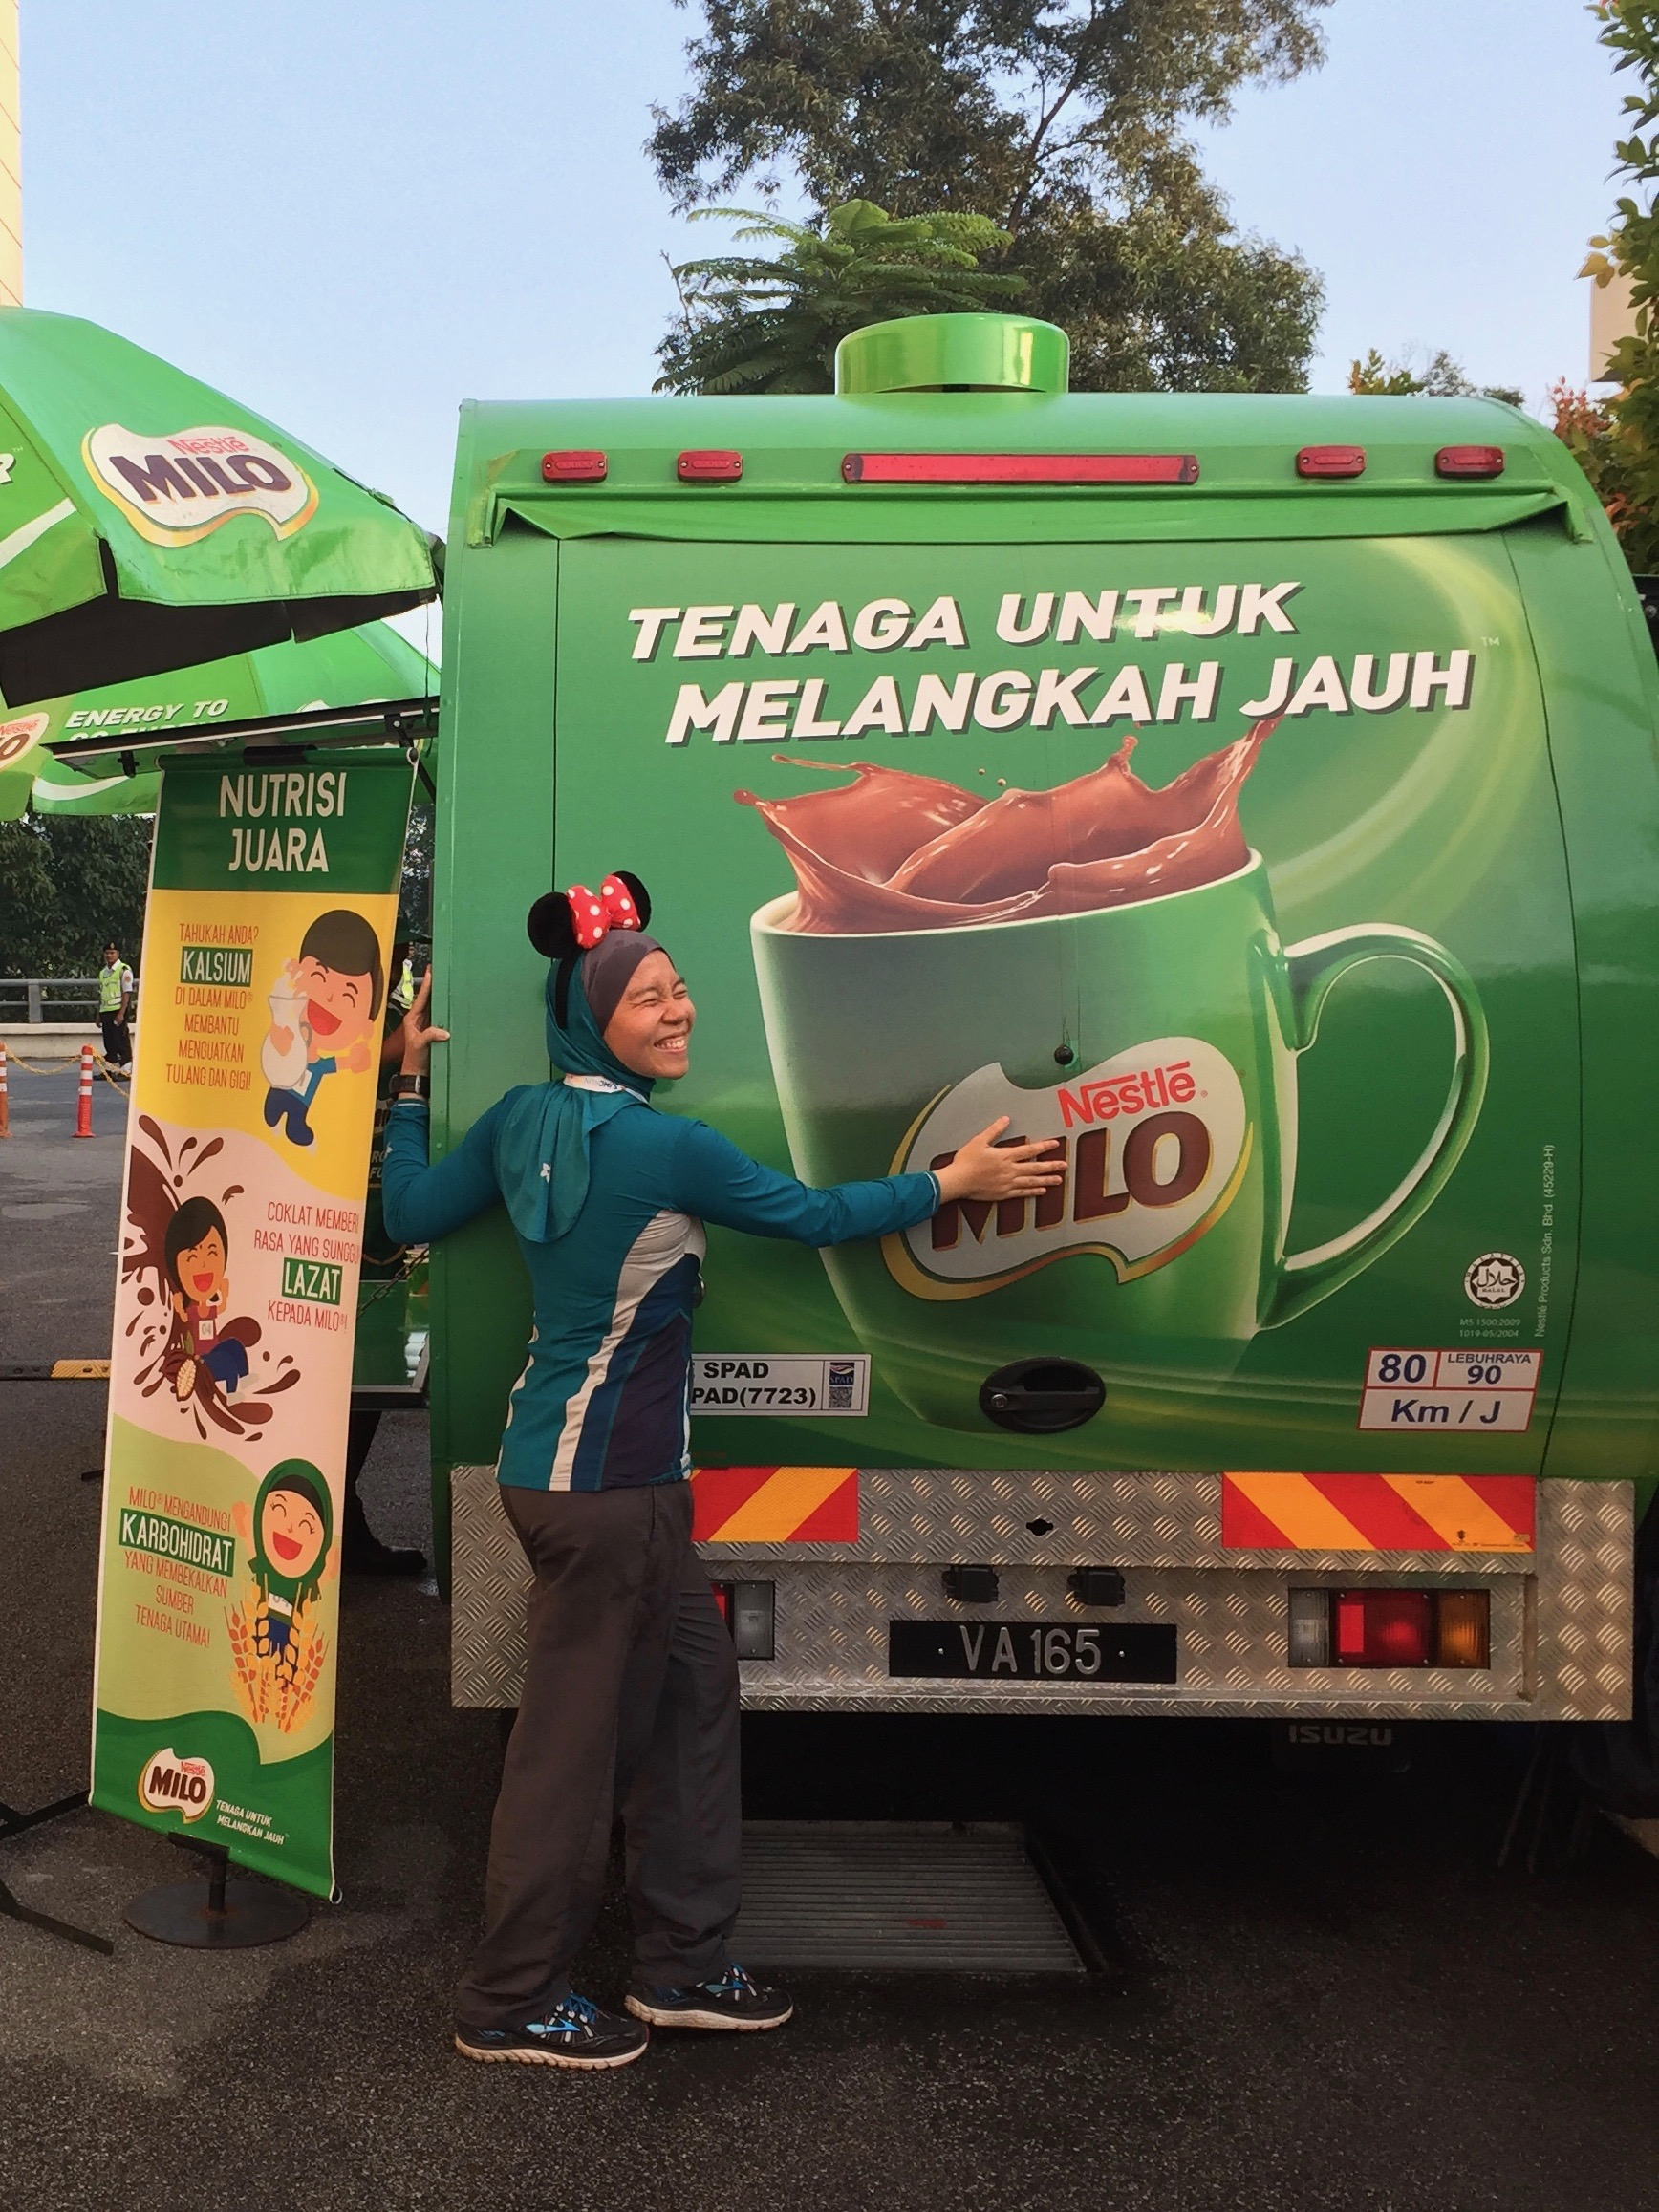 Picture was taken at a different event, but the Milo lorry is still the same!